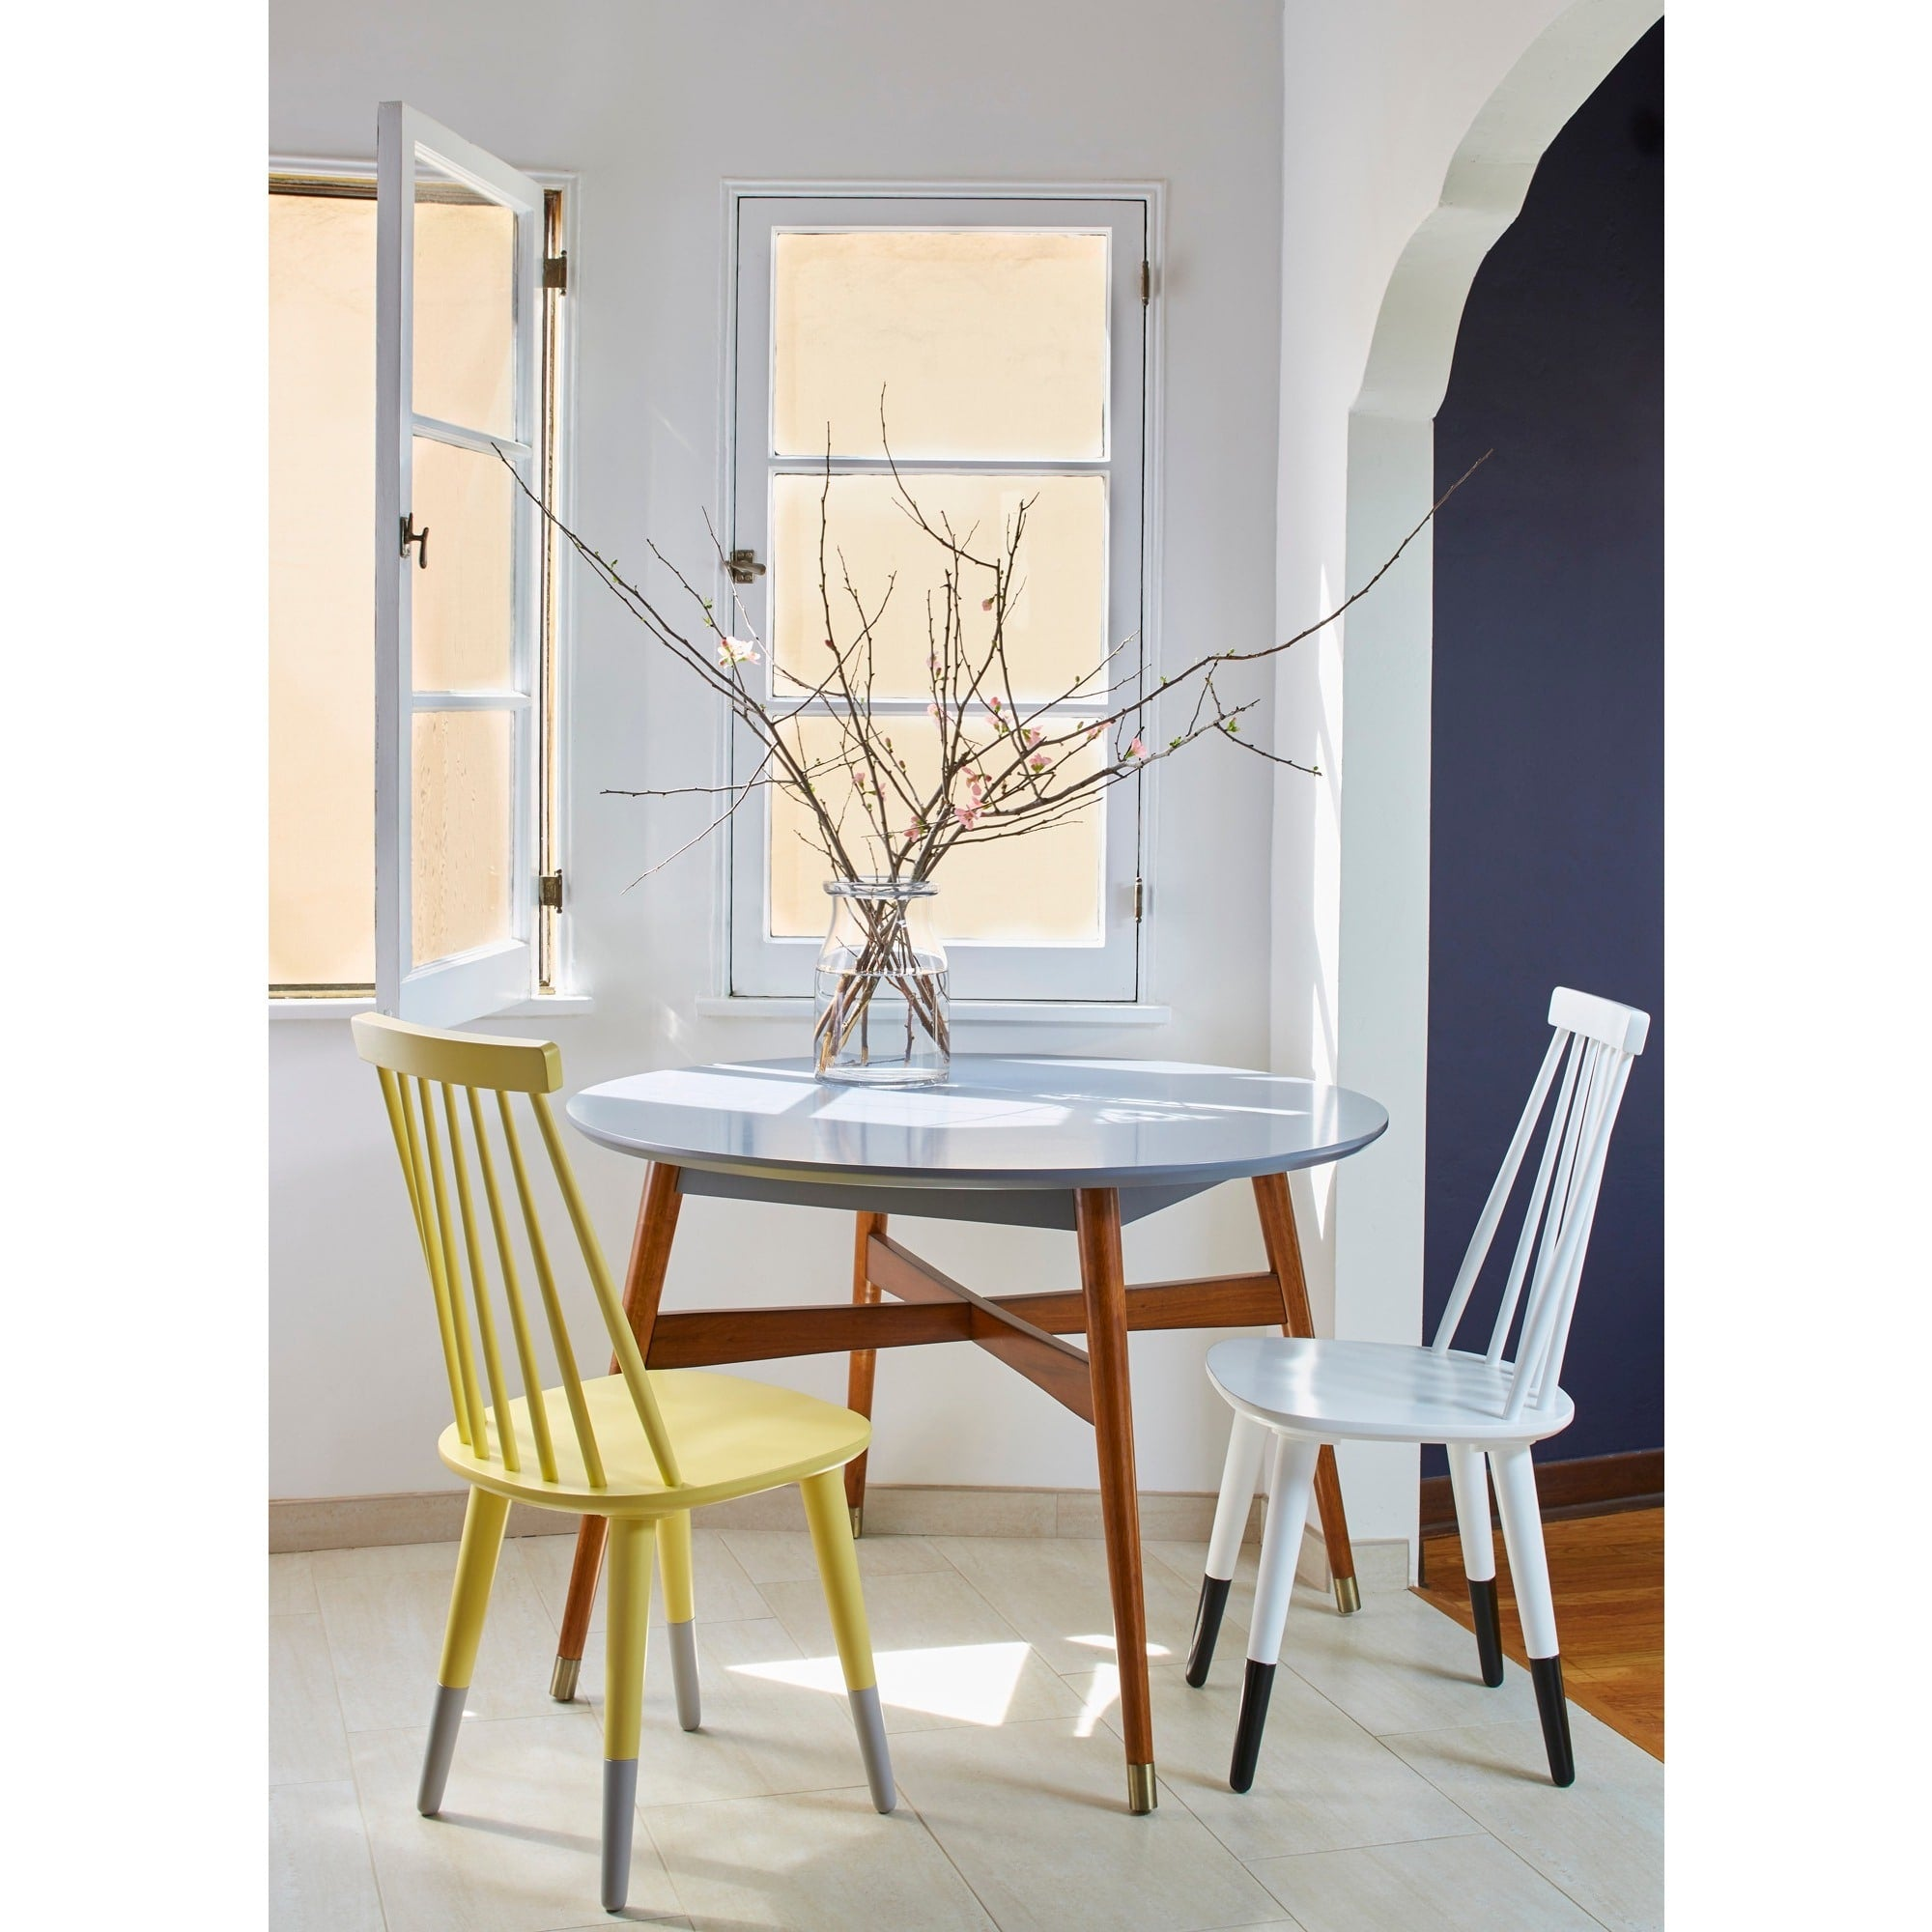 AngeloHOME Wood Dining Chairs In Yellow Set Of 2